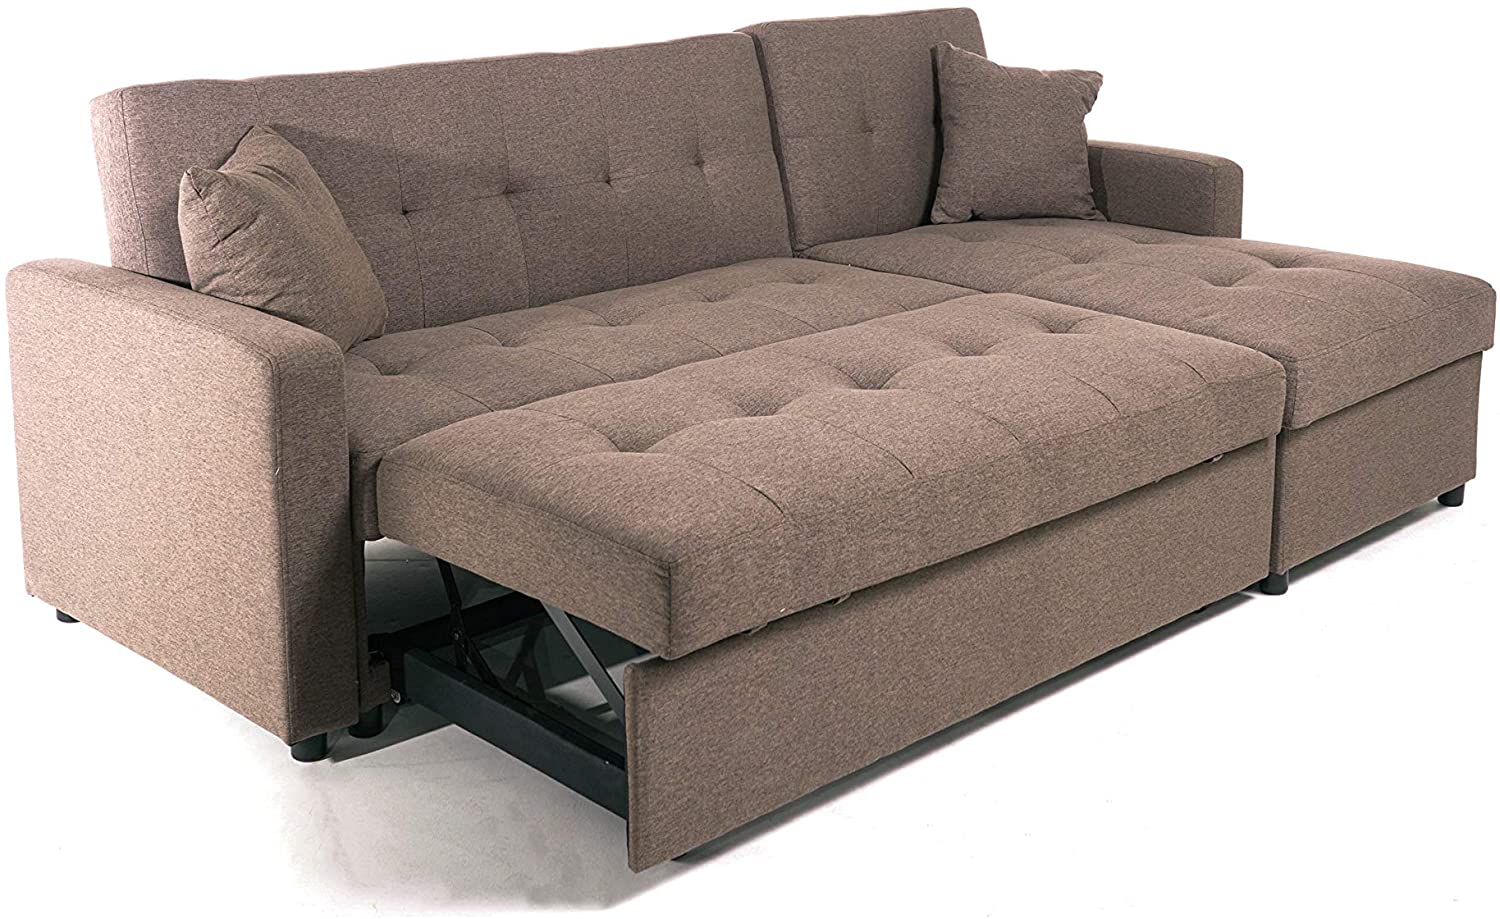 hinton l shaped corner sofa bed with hidden storage and reversible chaise versatile lh or rh orientation in brown